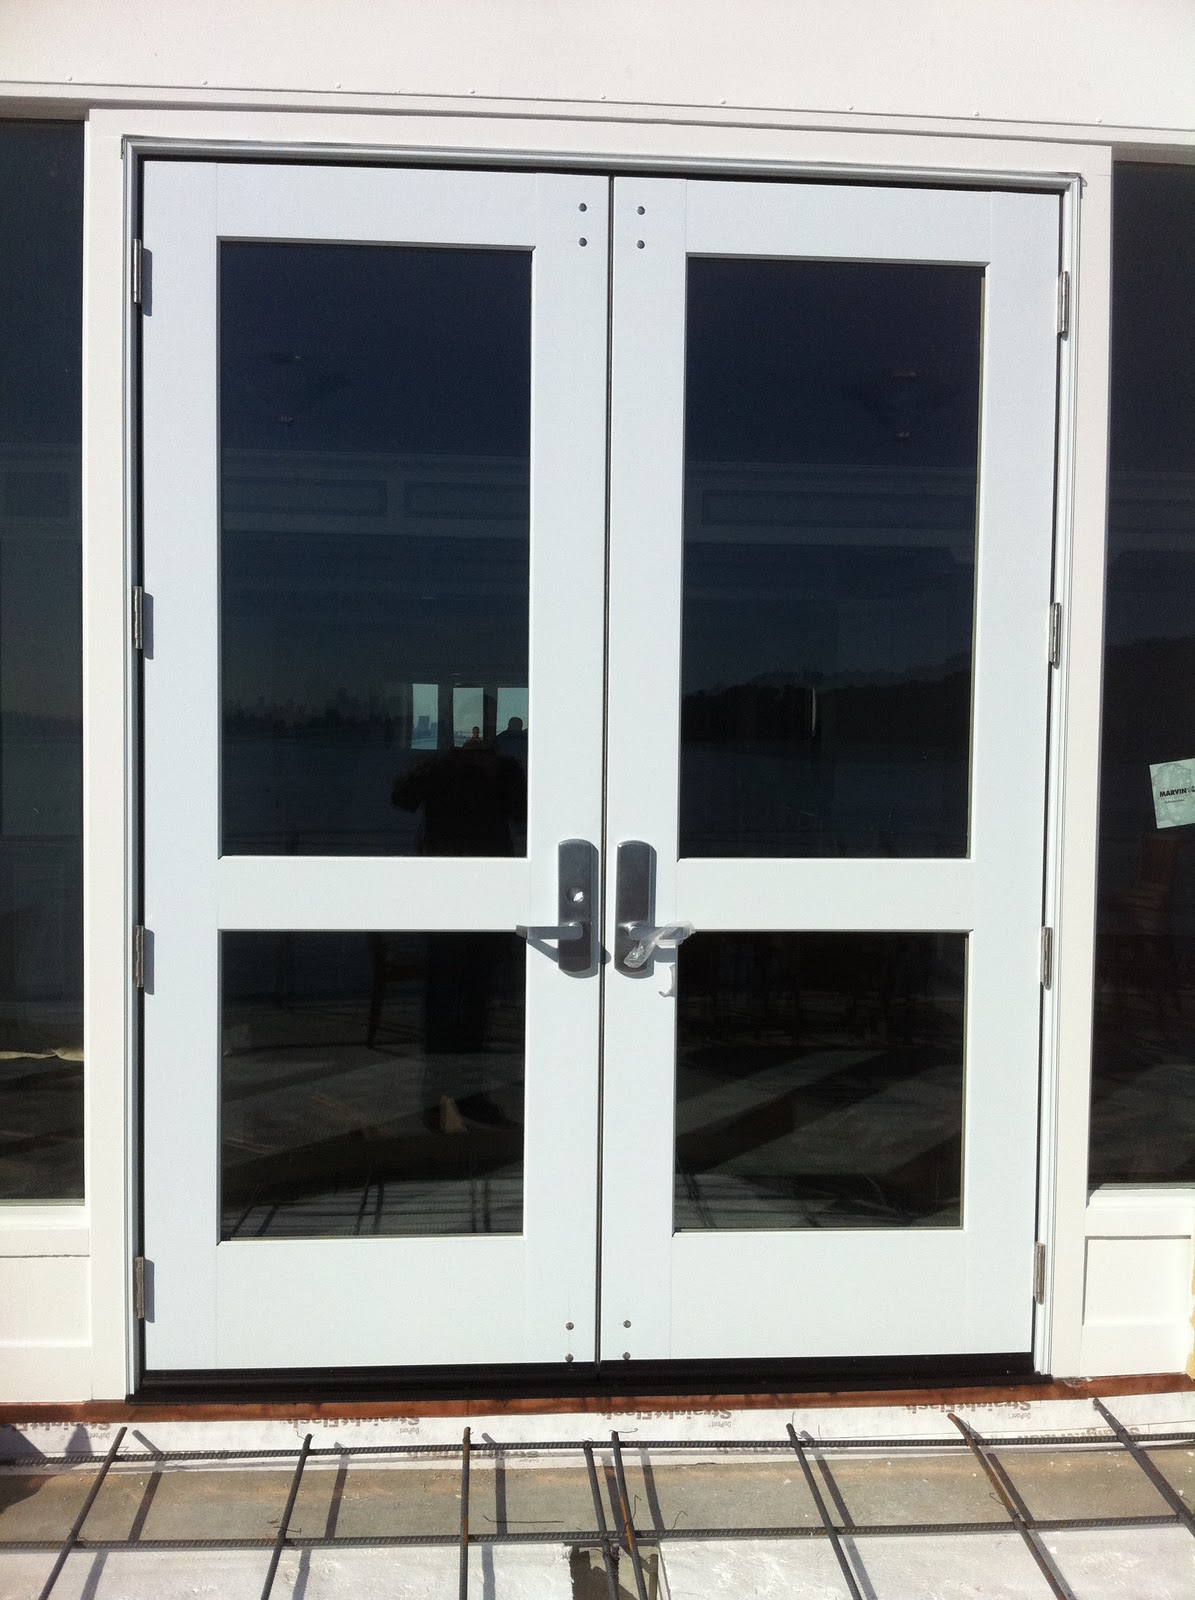 marvin commercial door installation with von duprin hardware ForCommercial Entry Doors